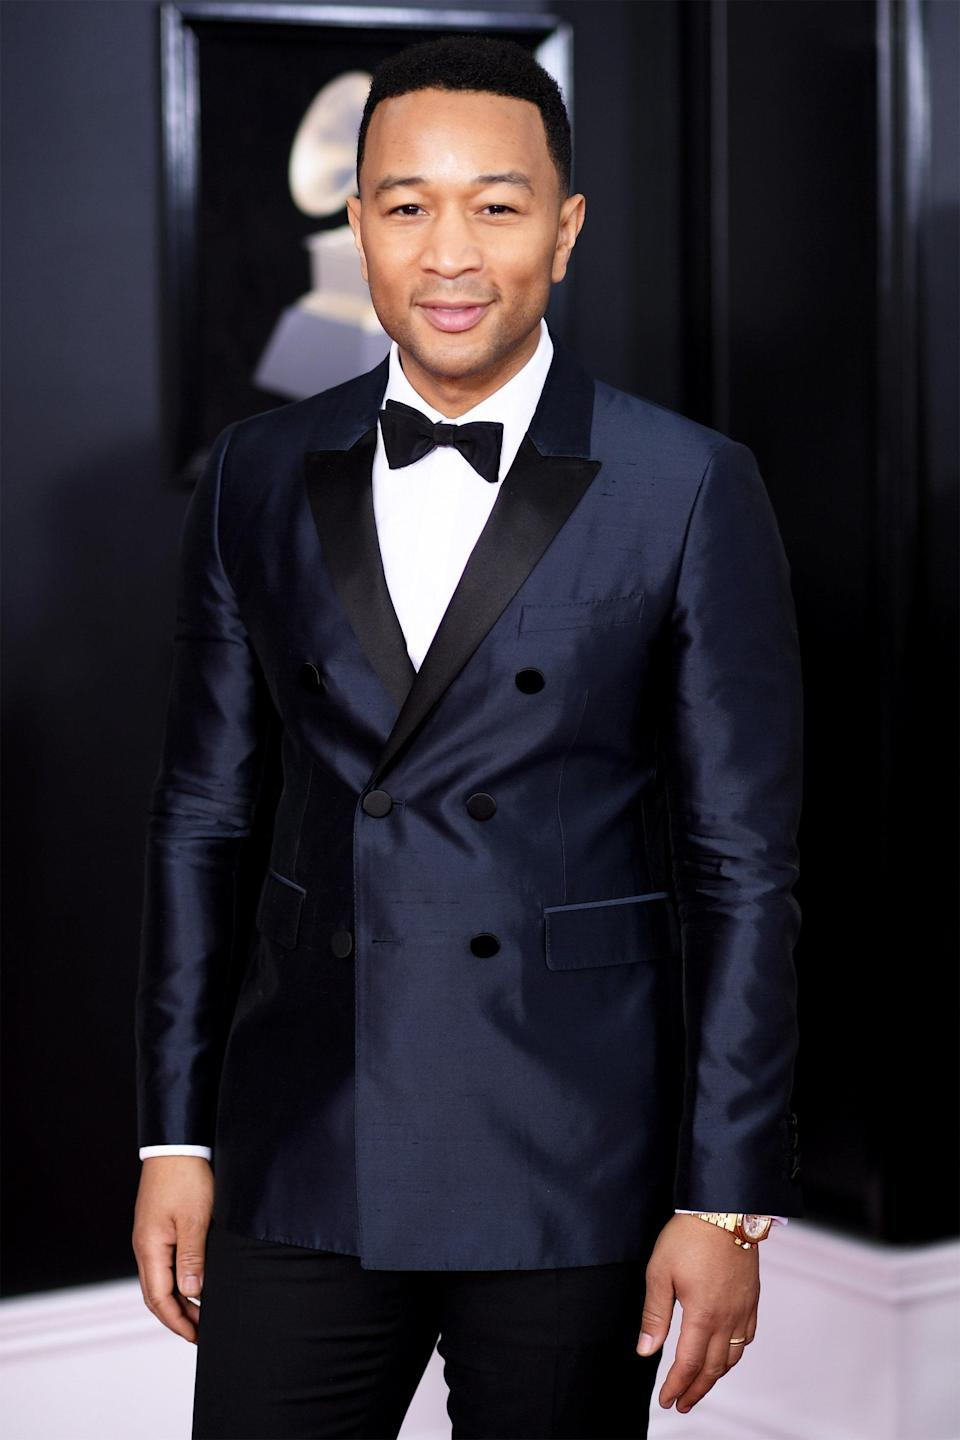 """John Legend's last name is quite fitting, though the Grammy winner's said he """"never"""" would have chosen it himself. (His real name is John Roger Stephens.) """"John Legend is a nickname that some friends started calling me, and it kind of grew into my stage name,"""" he told <a href=""""http://www.mtv.com/news/1593317/john-legend-reflects-on-his-early-days-when-kanye-west-was-opening-for-him/"""" rel=""""nofollow noopener"""" target=""""_blank"""" data-ylk=""""slk:MTV News"""" class=""""link rapid-noclick-resp""""><em>MTV News</em></a>. """"It grew to the point where more people in my circle would know me by that name than by my real name. I had to make a decision."""""""